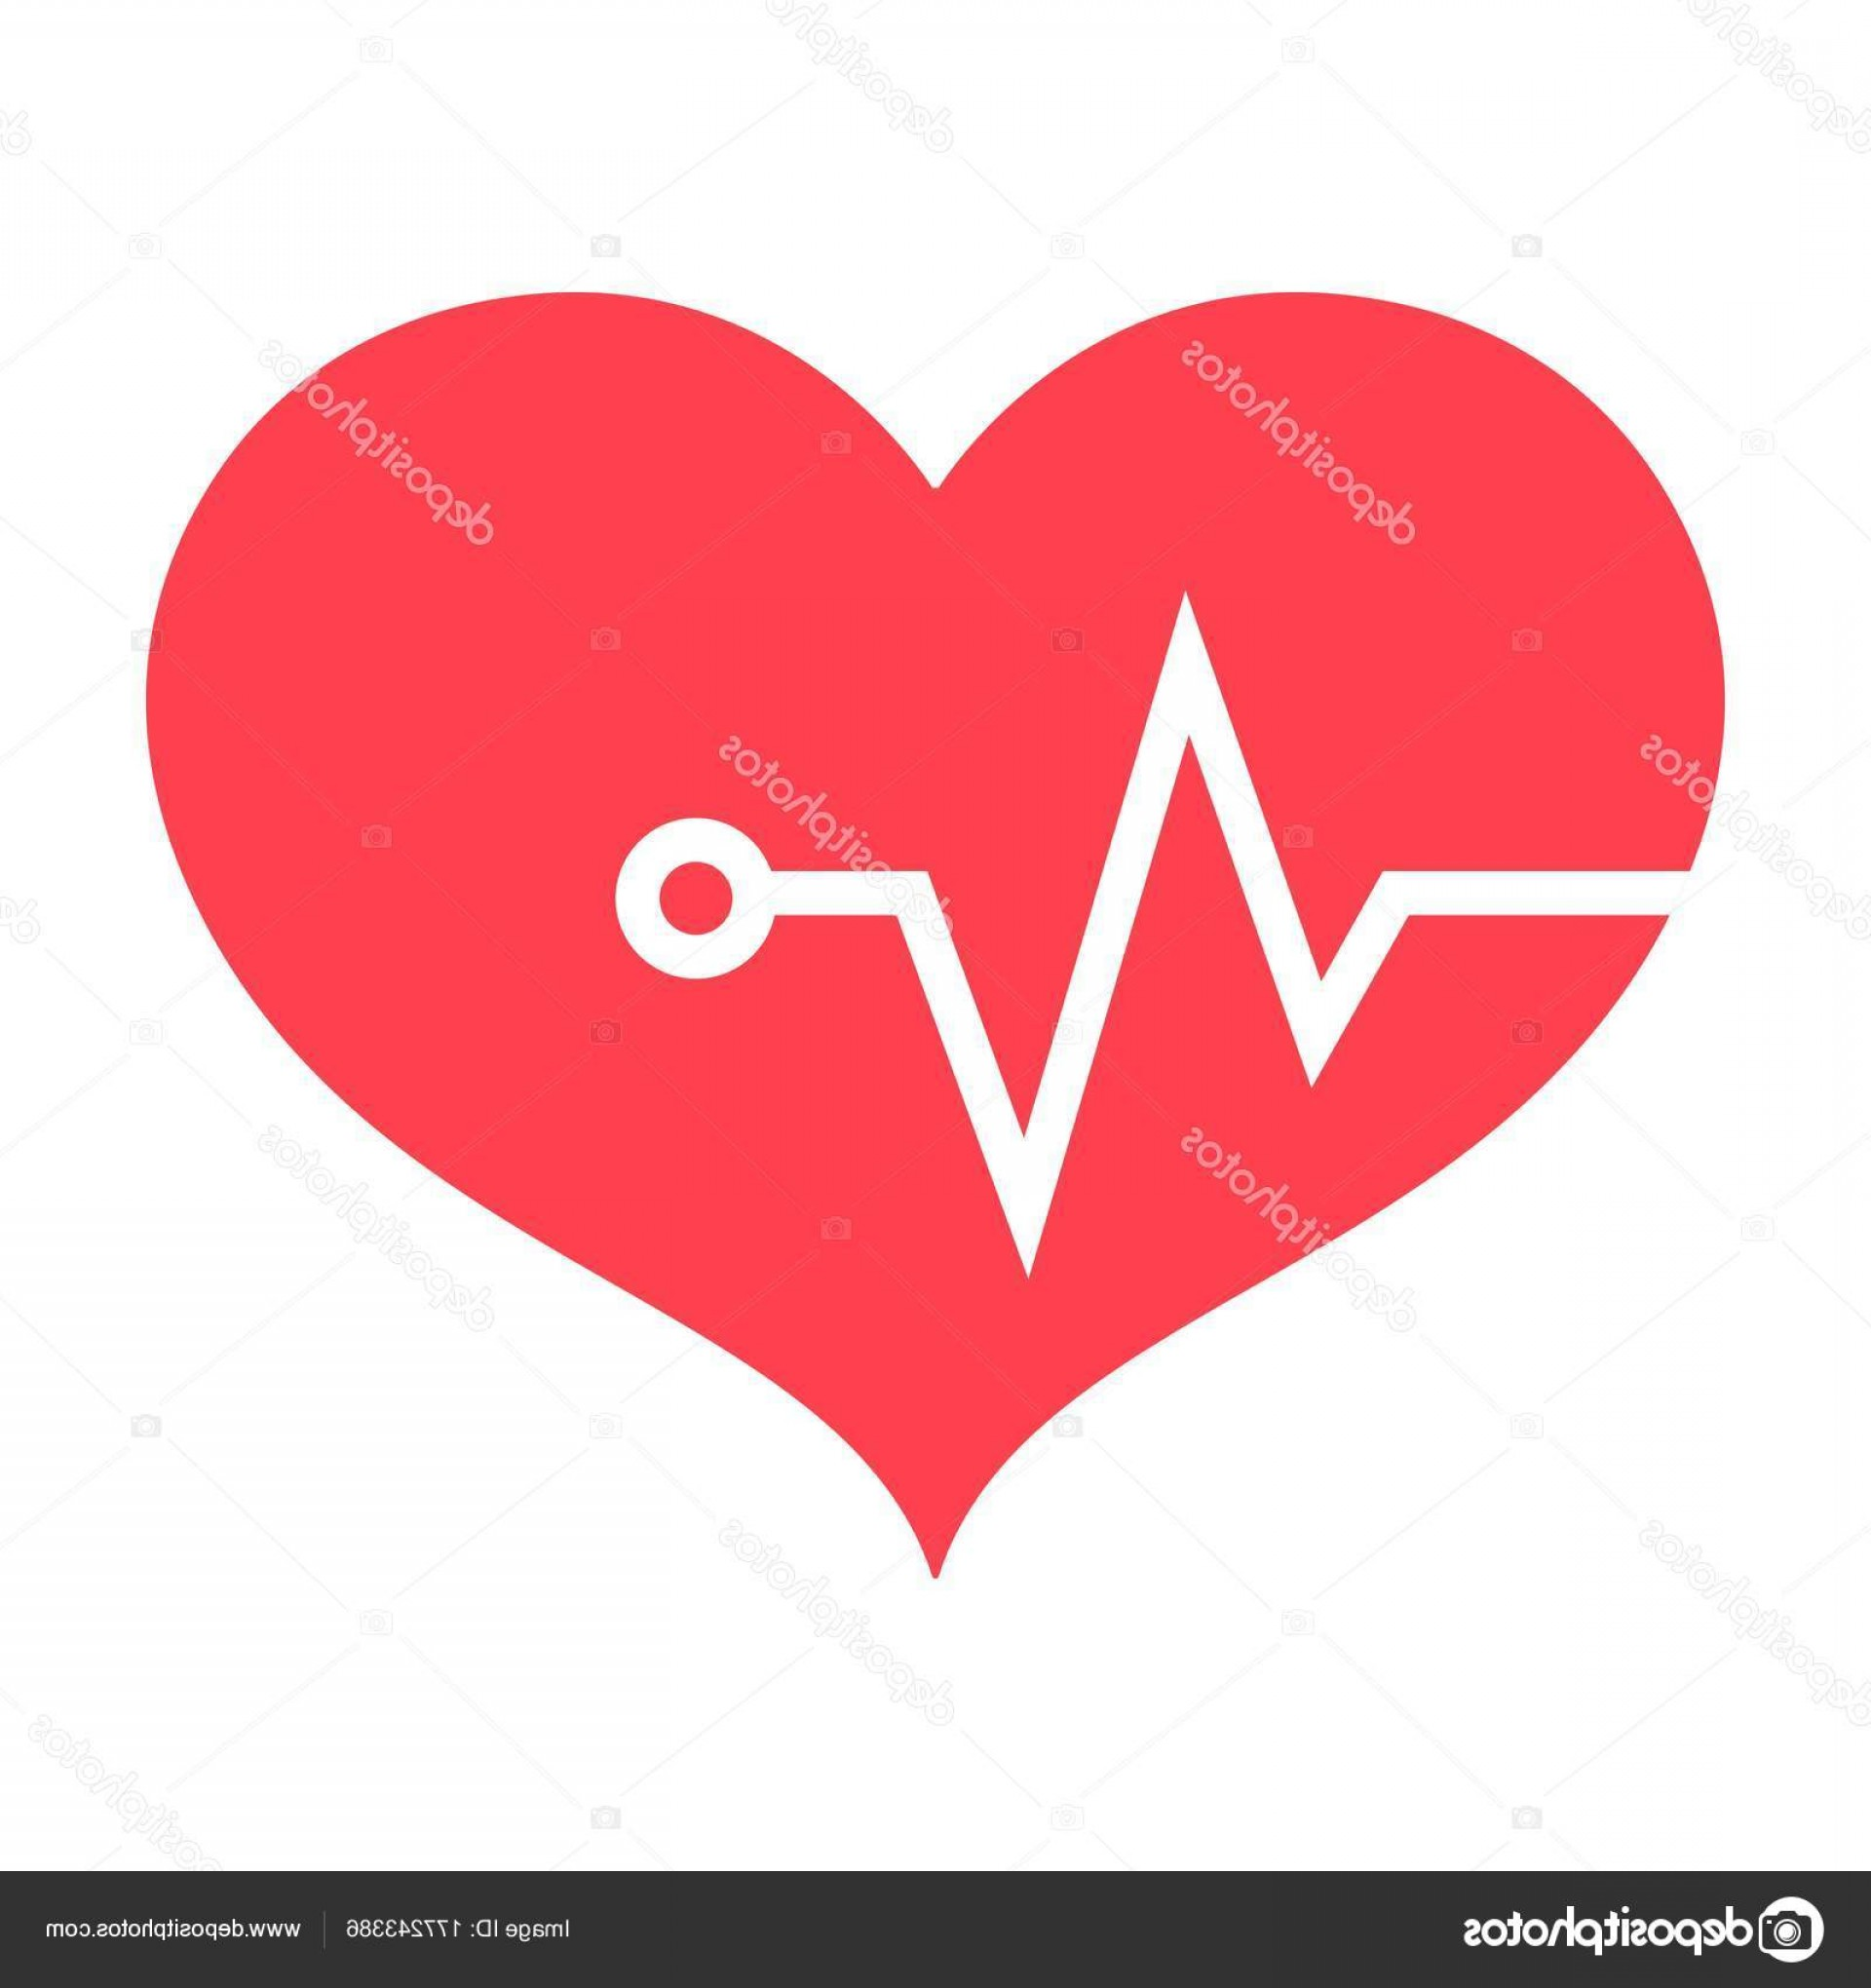 Solid Heart Vector Drawing: Stock Illustration Heart Pulse Flat Icon Fitness